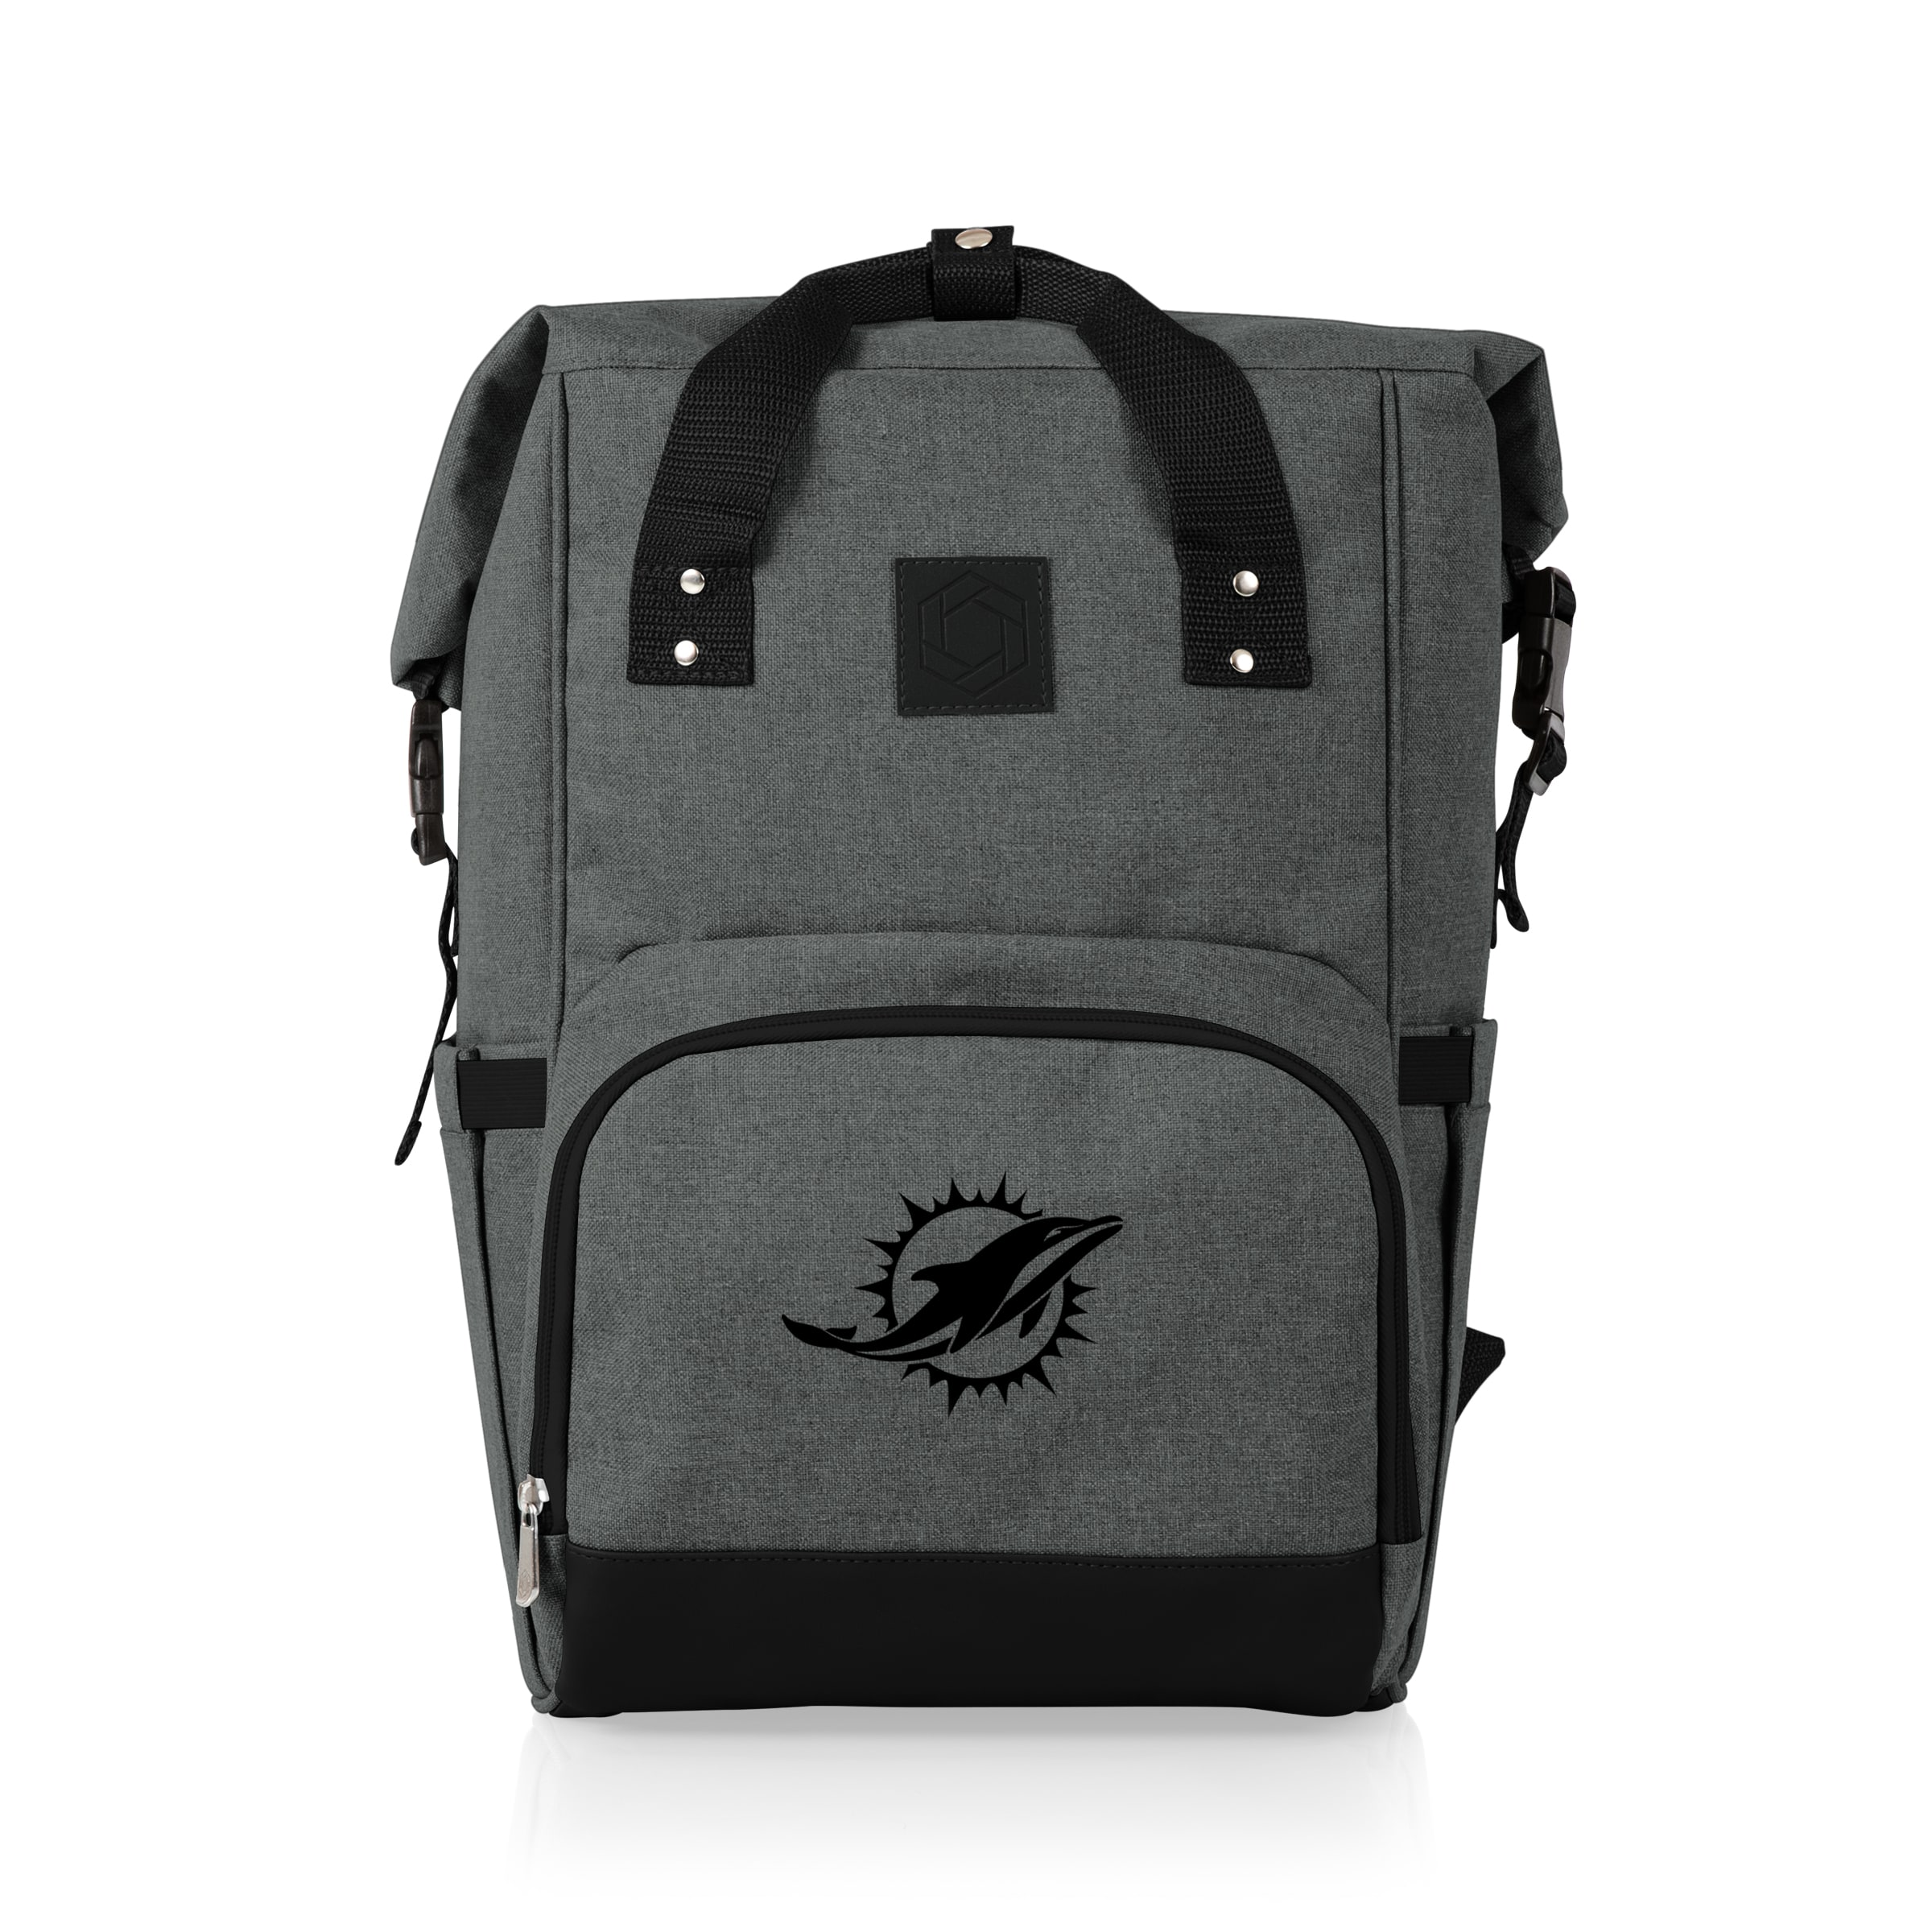 Miami Dolphins Backpack - Gray